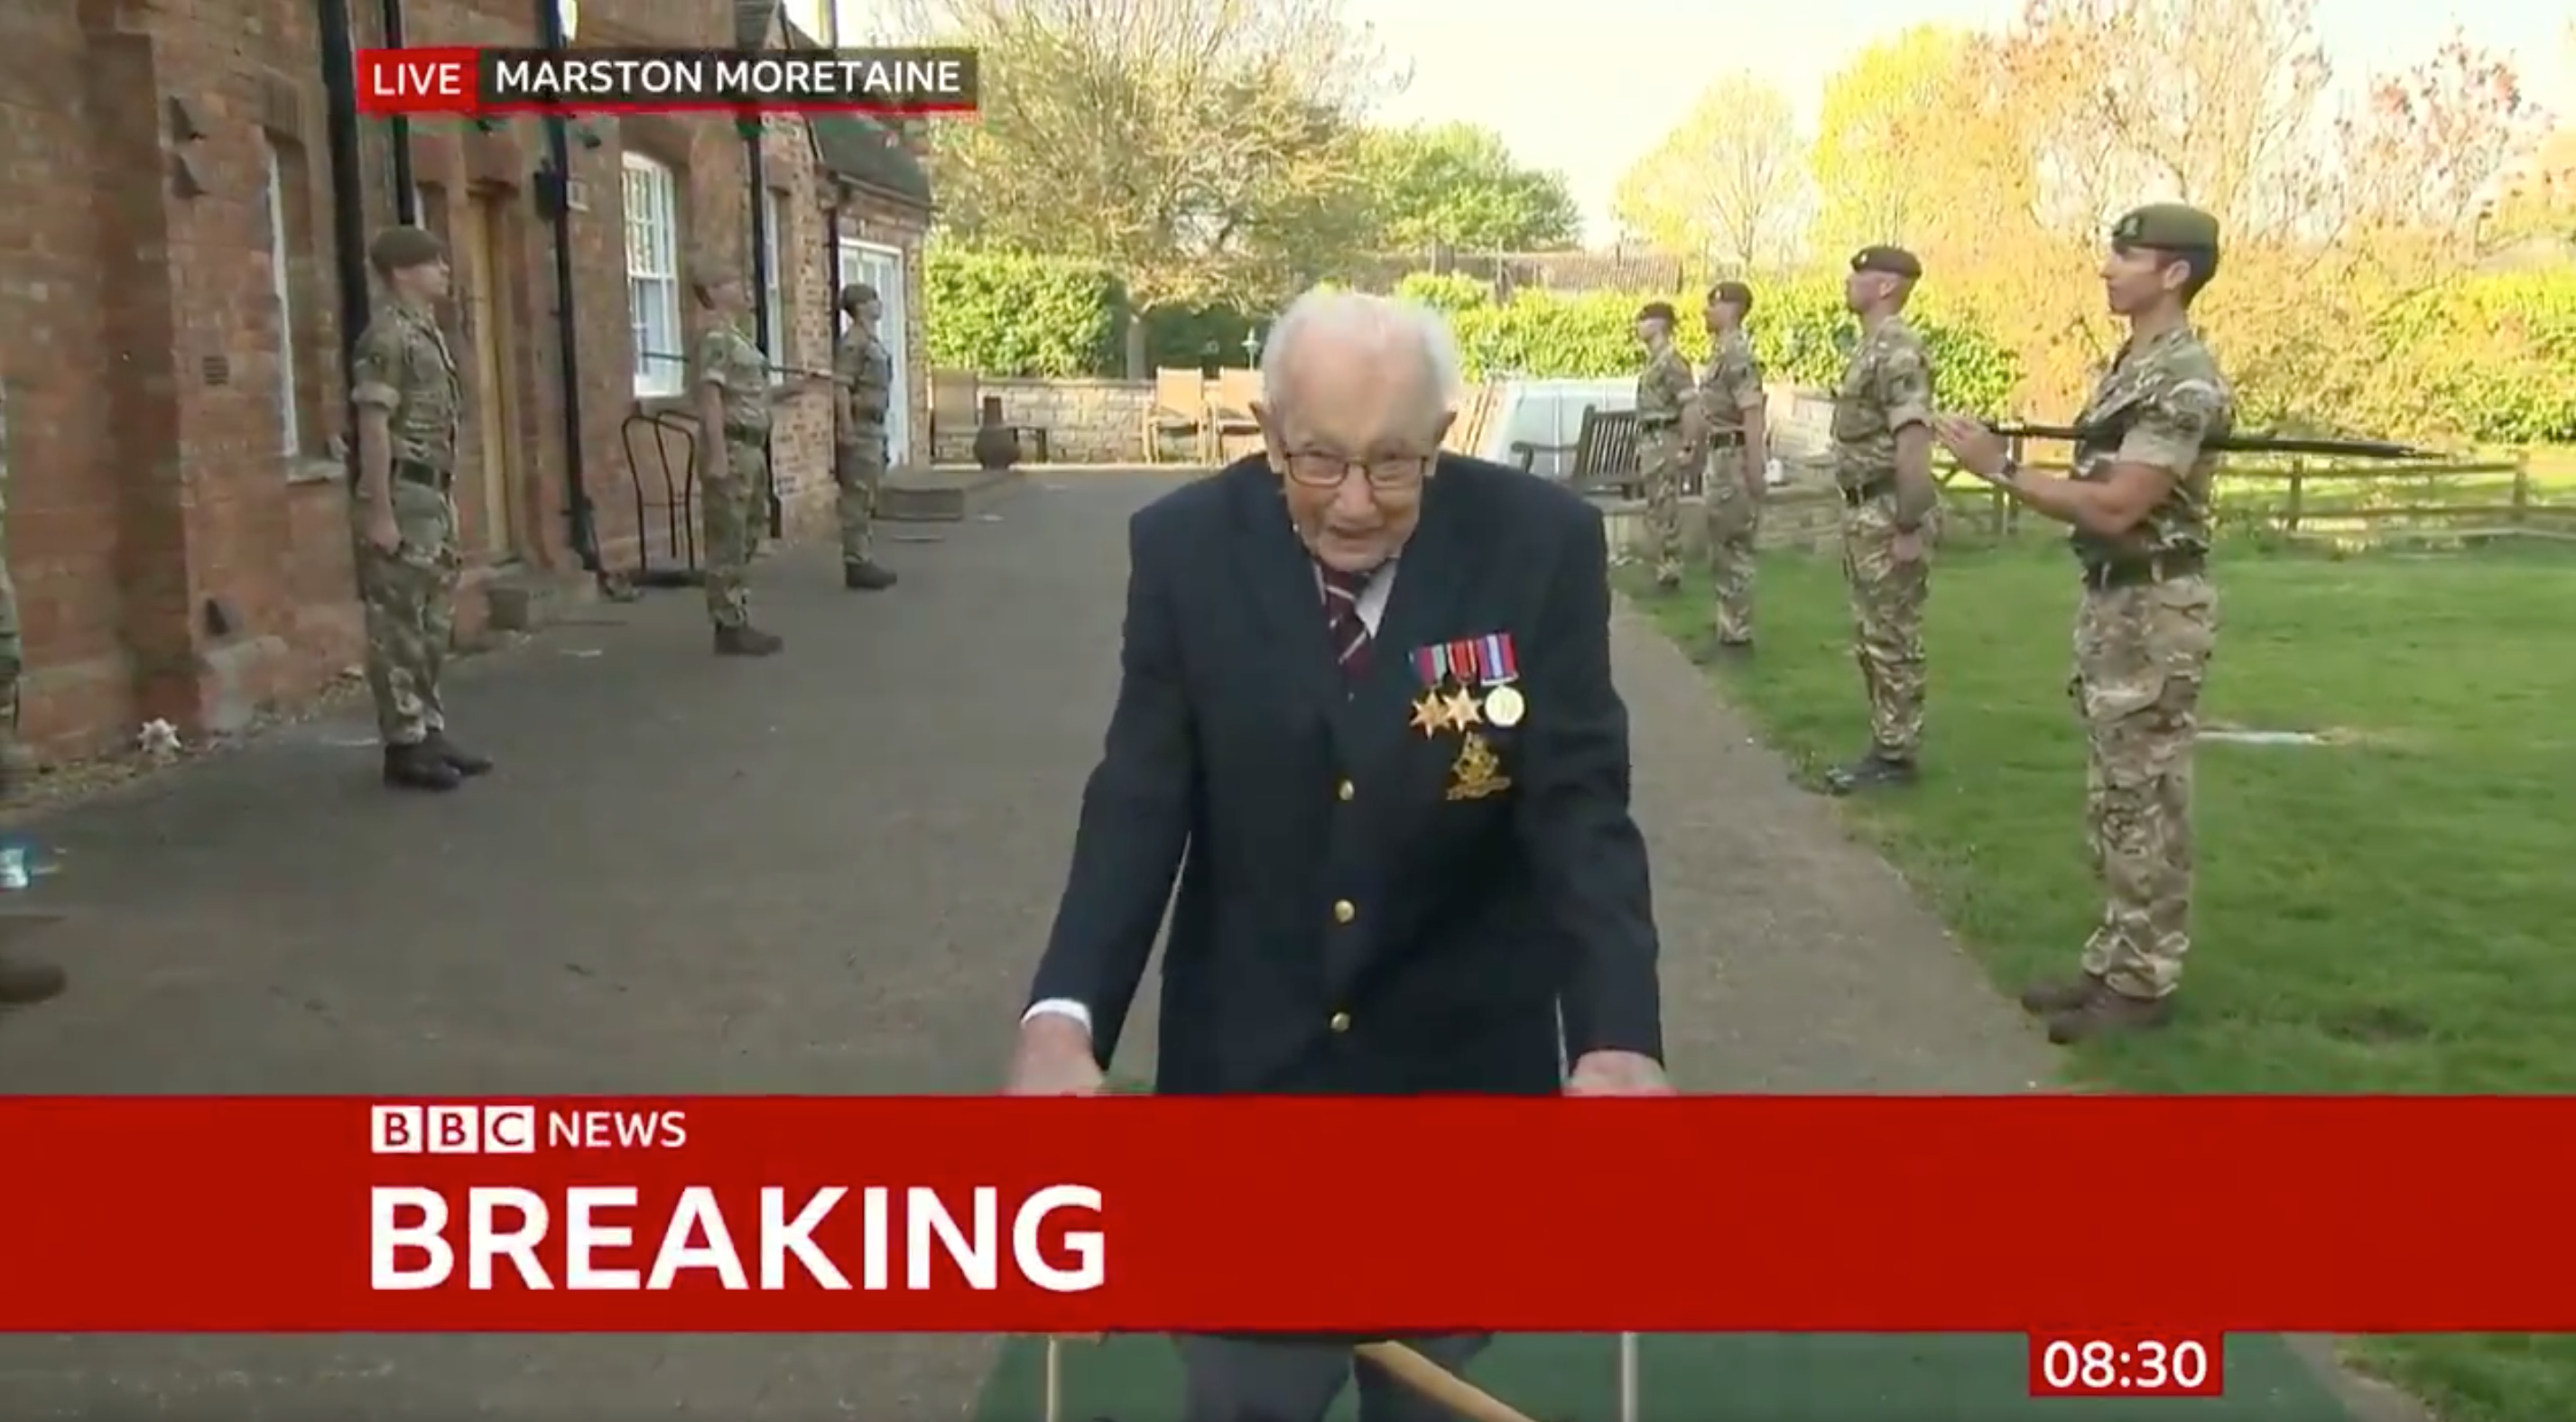 Above: Captain Tom Moore on BBC News completing his 100th lap, which has seen him raise more than £13 million for the NHS.